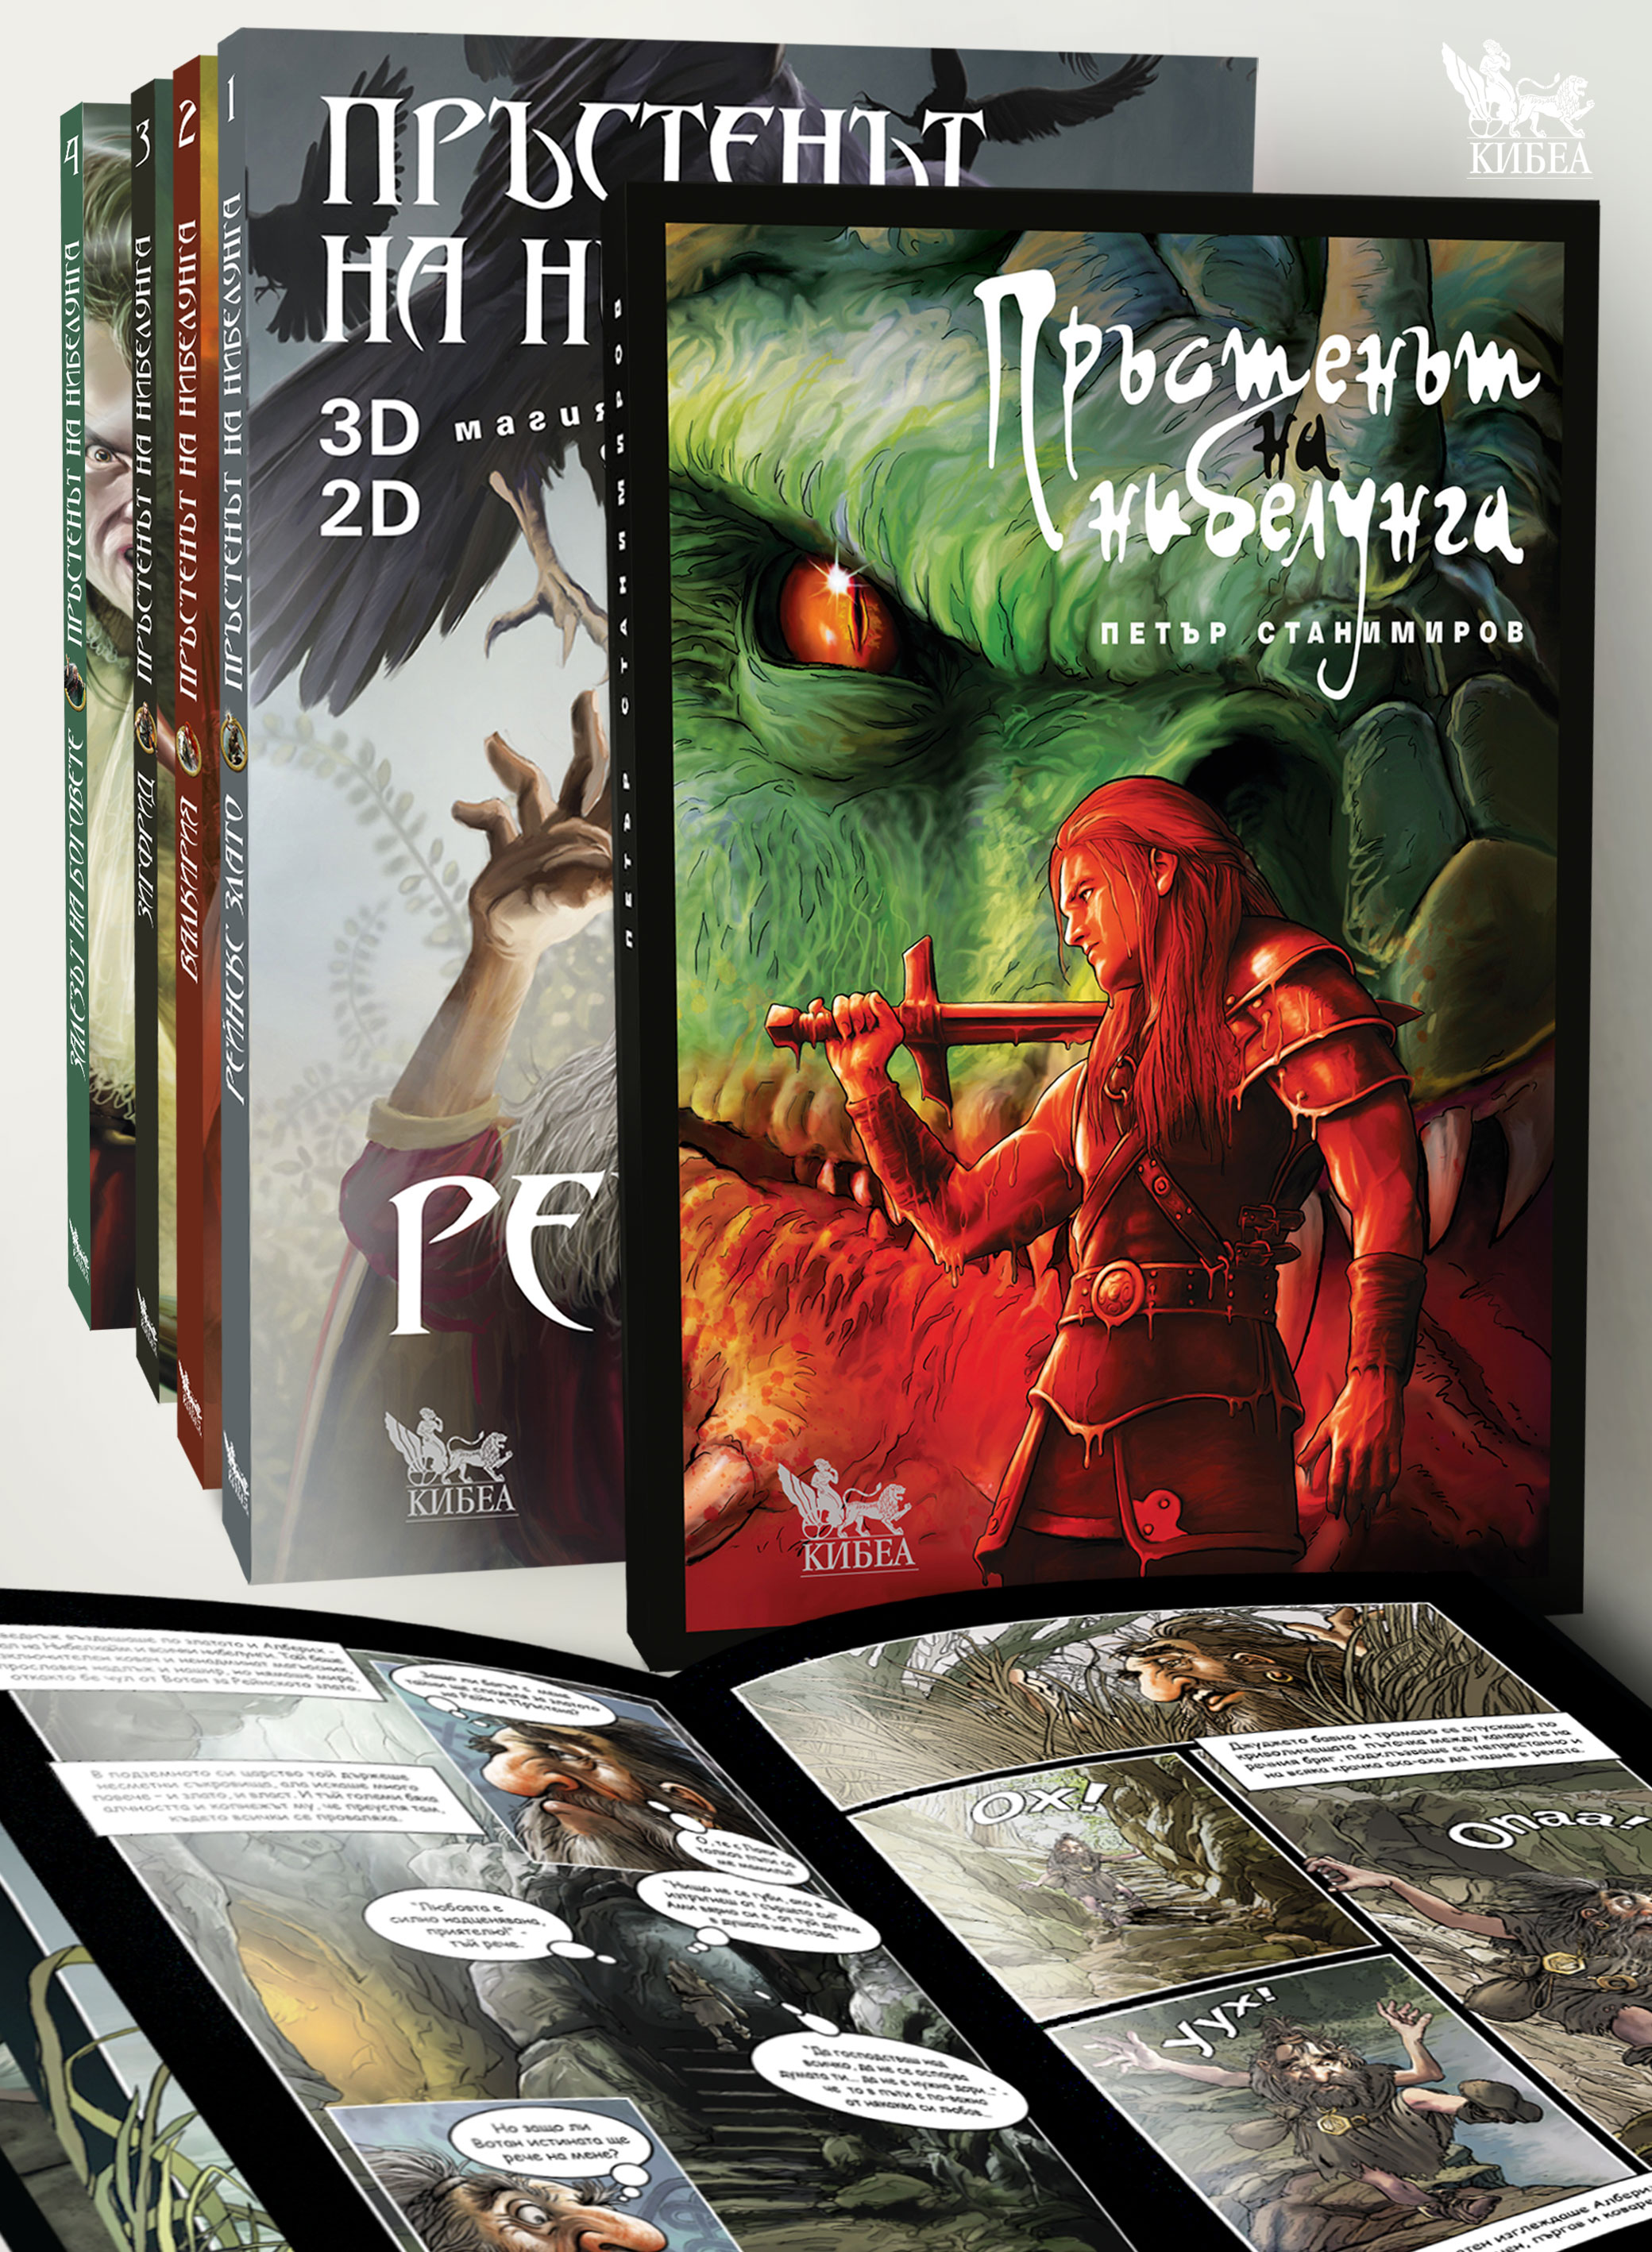 graphic-novelle-and-the-other-books